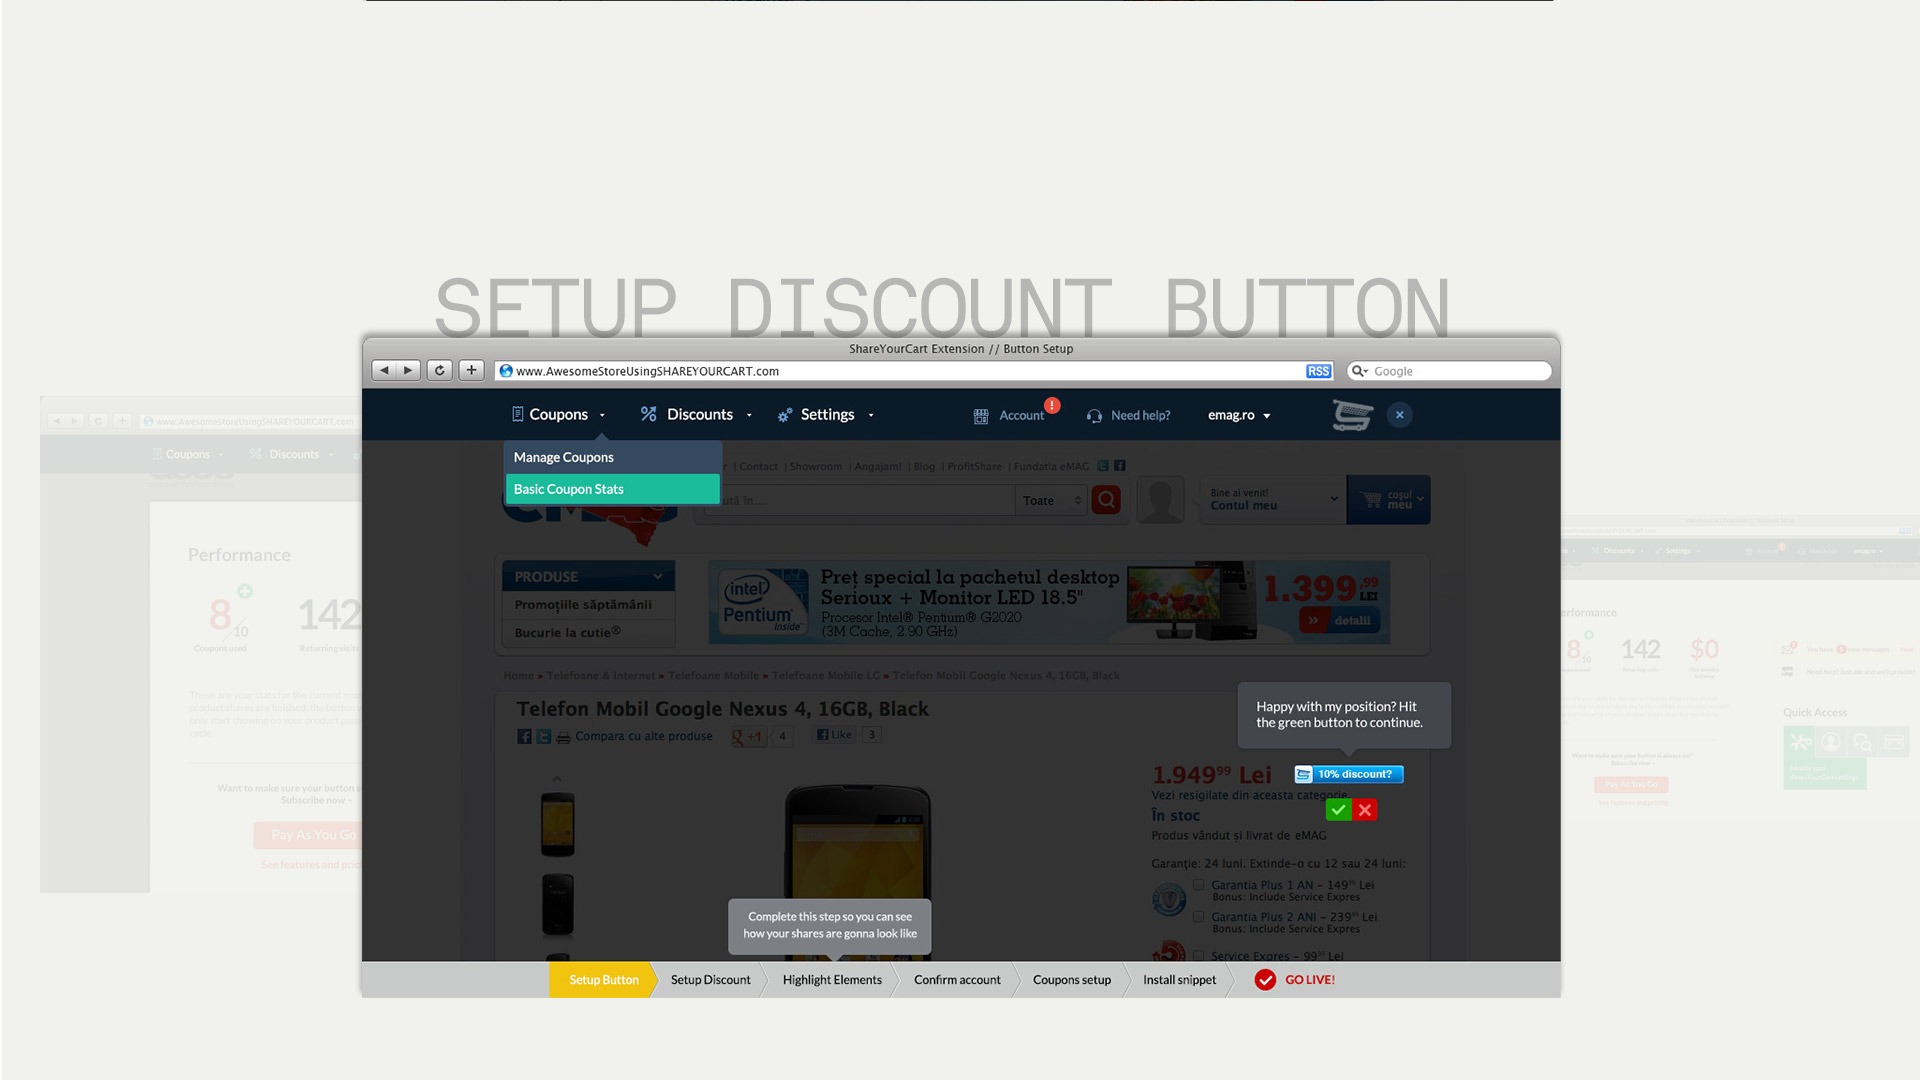 shareyourcart-social-marketing-02